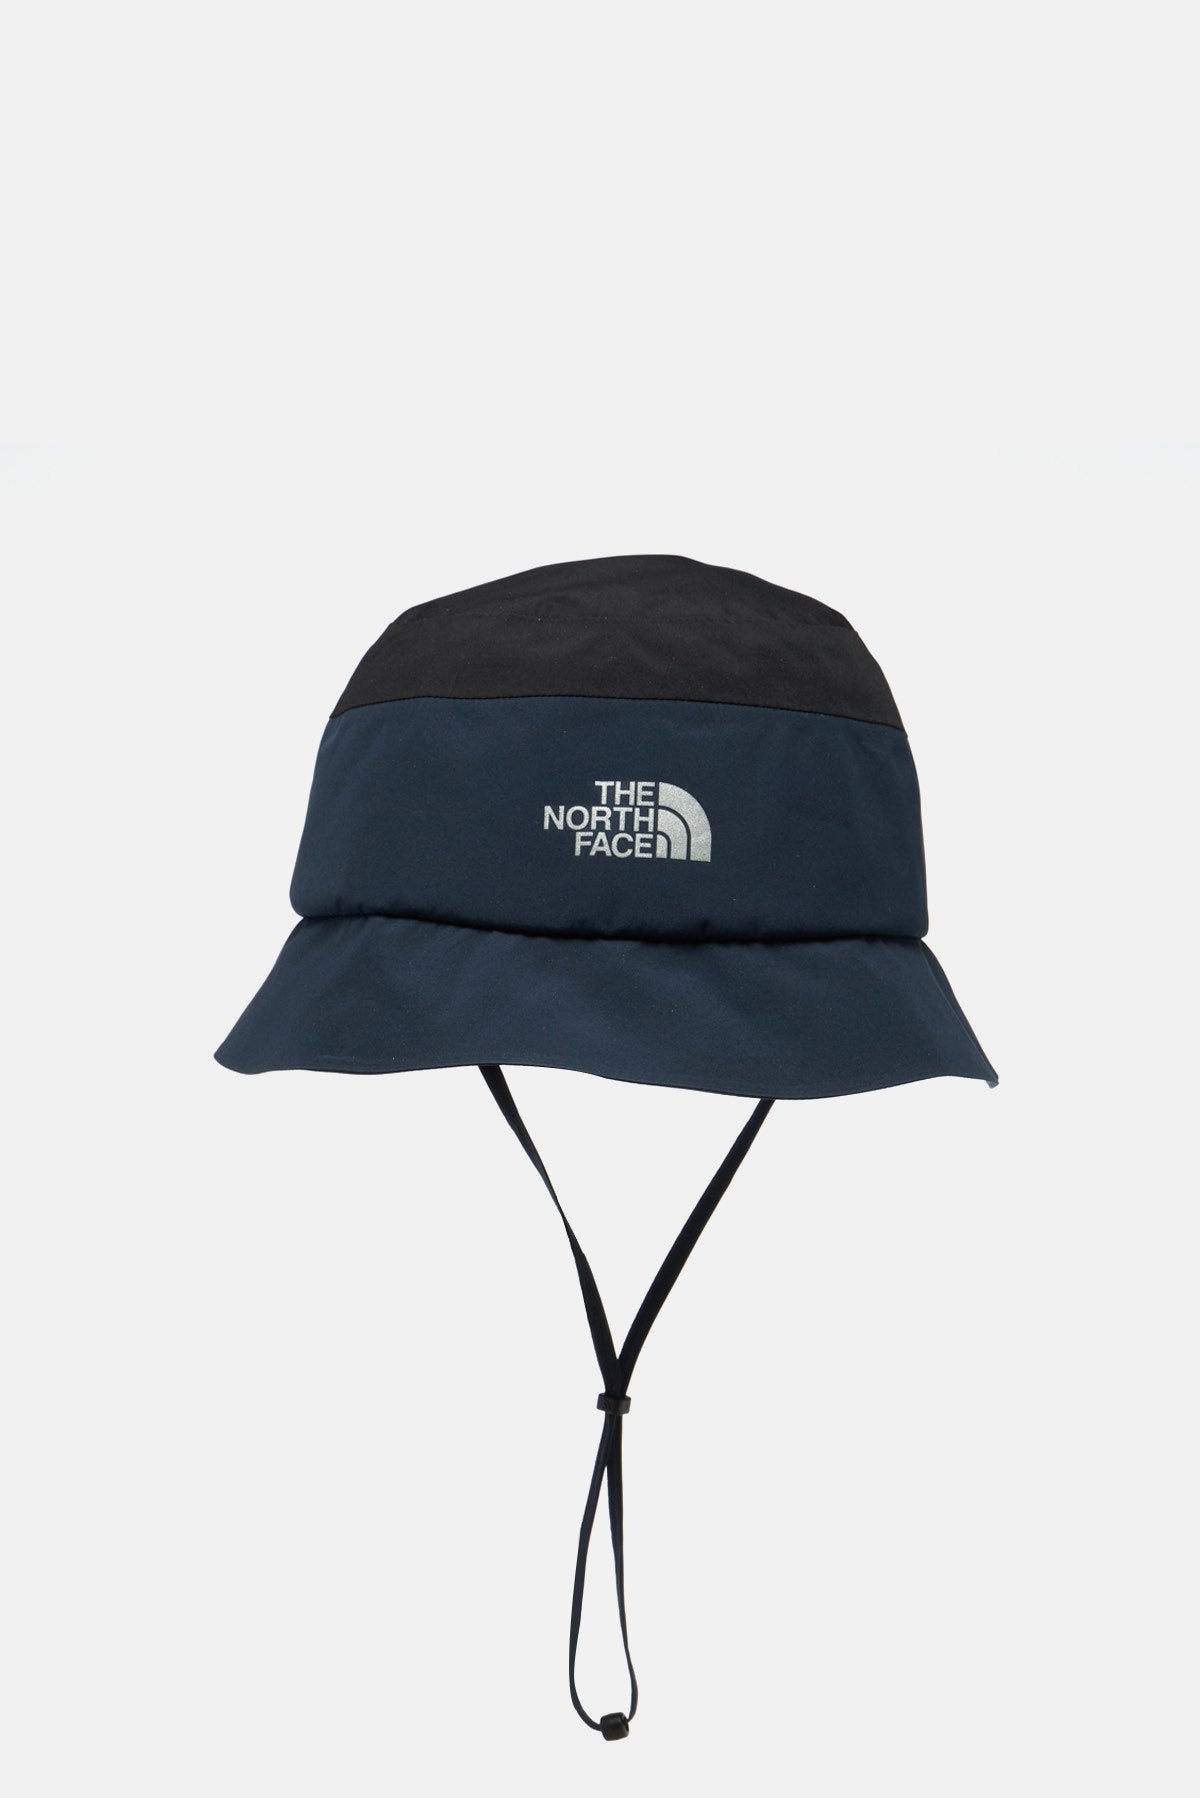 North Face GoreTex Bucket Hat available from Priory 34c5c36b3422